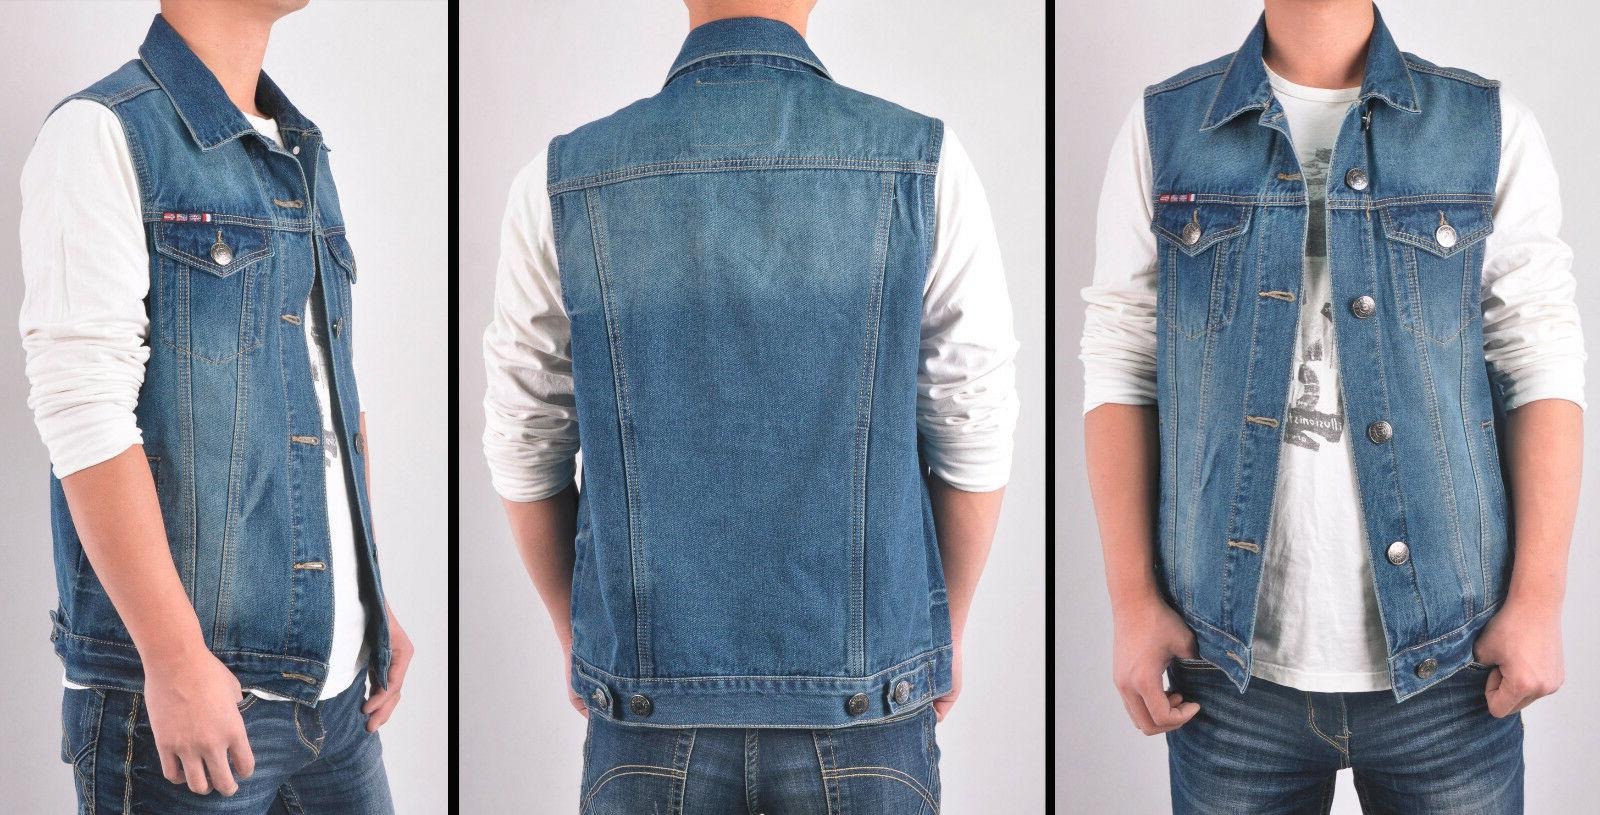 Mens Dark Jacket Sleeveless washed Motojacket Bikerjacket